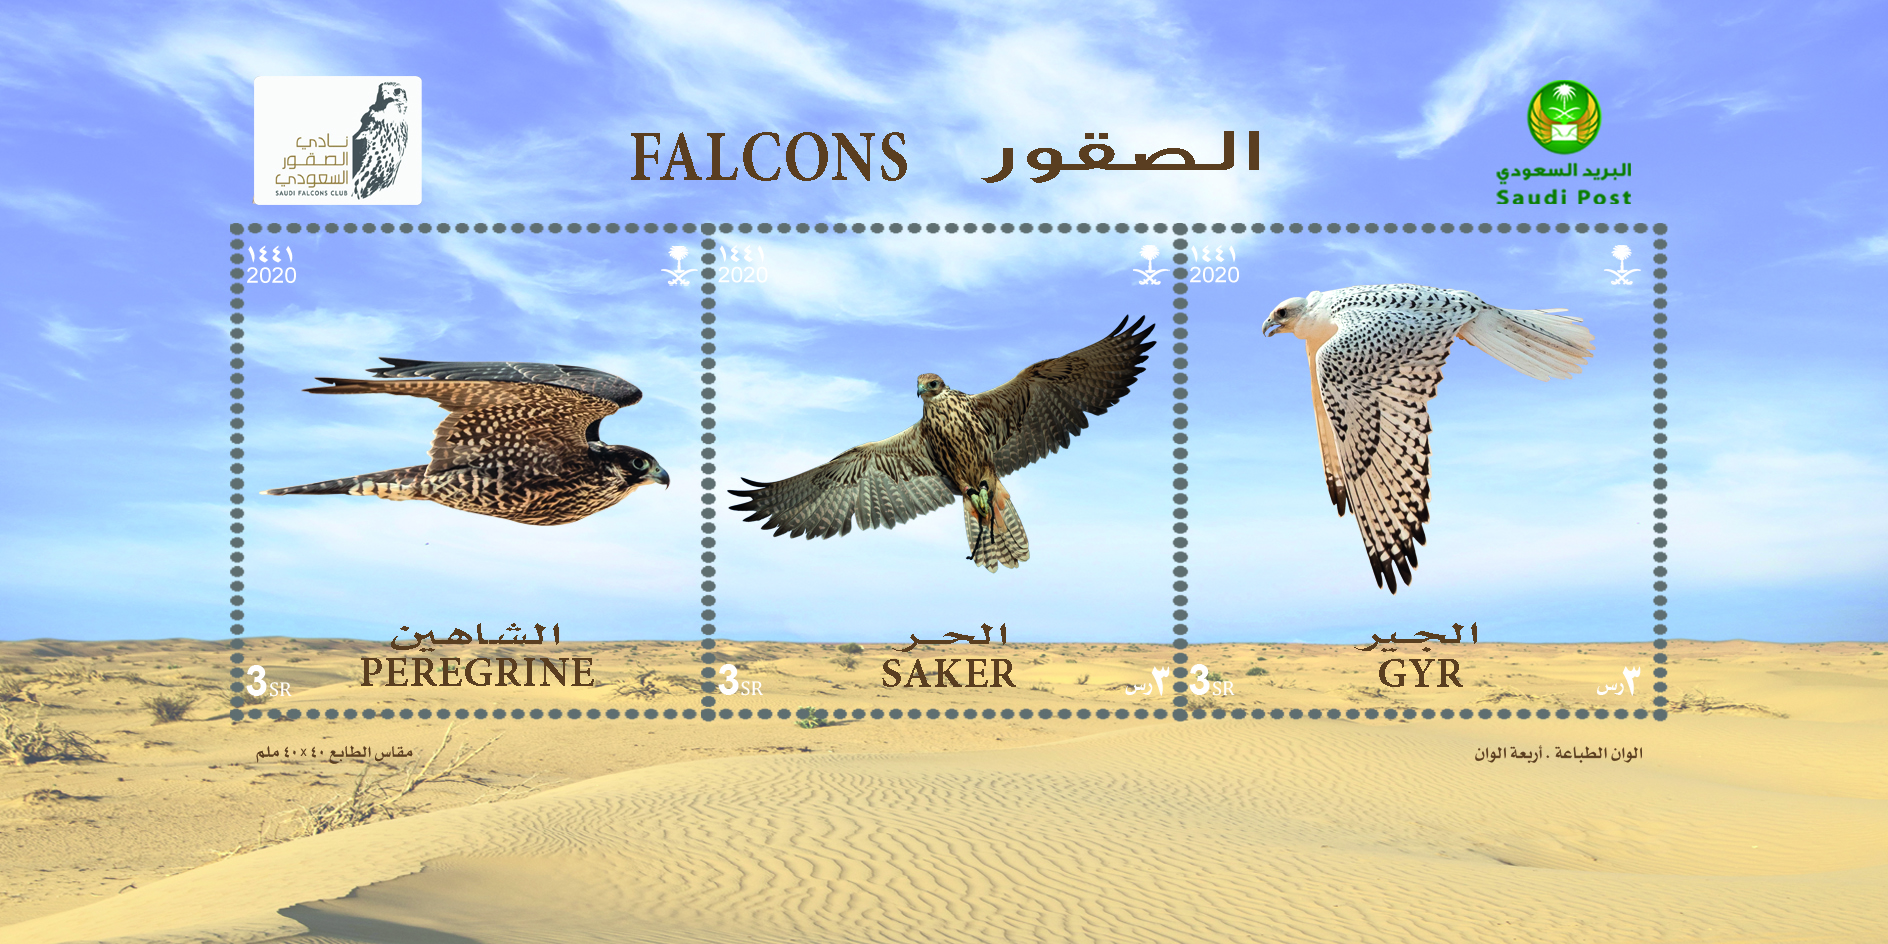 Saudi Post Issued a Postal Stamp on Falcons